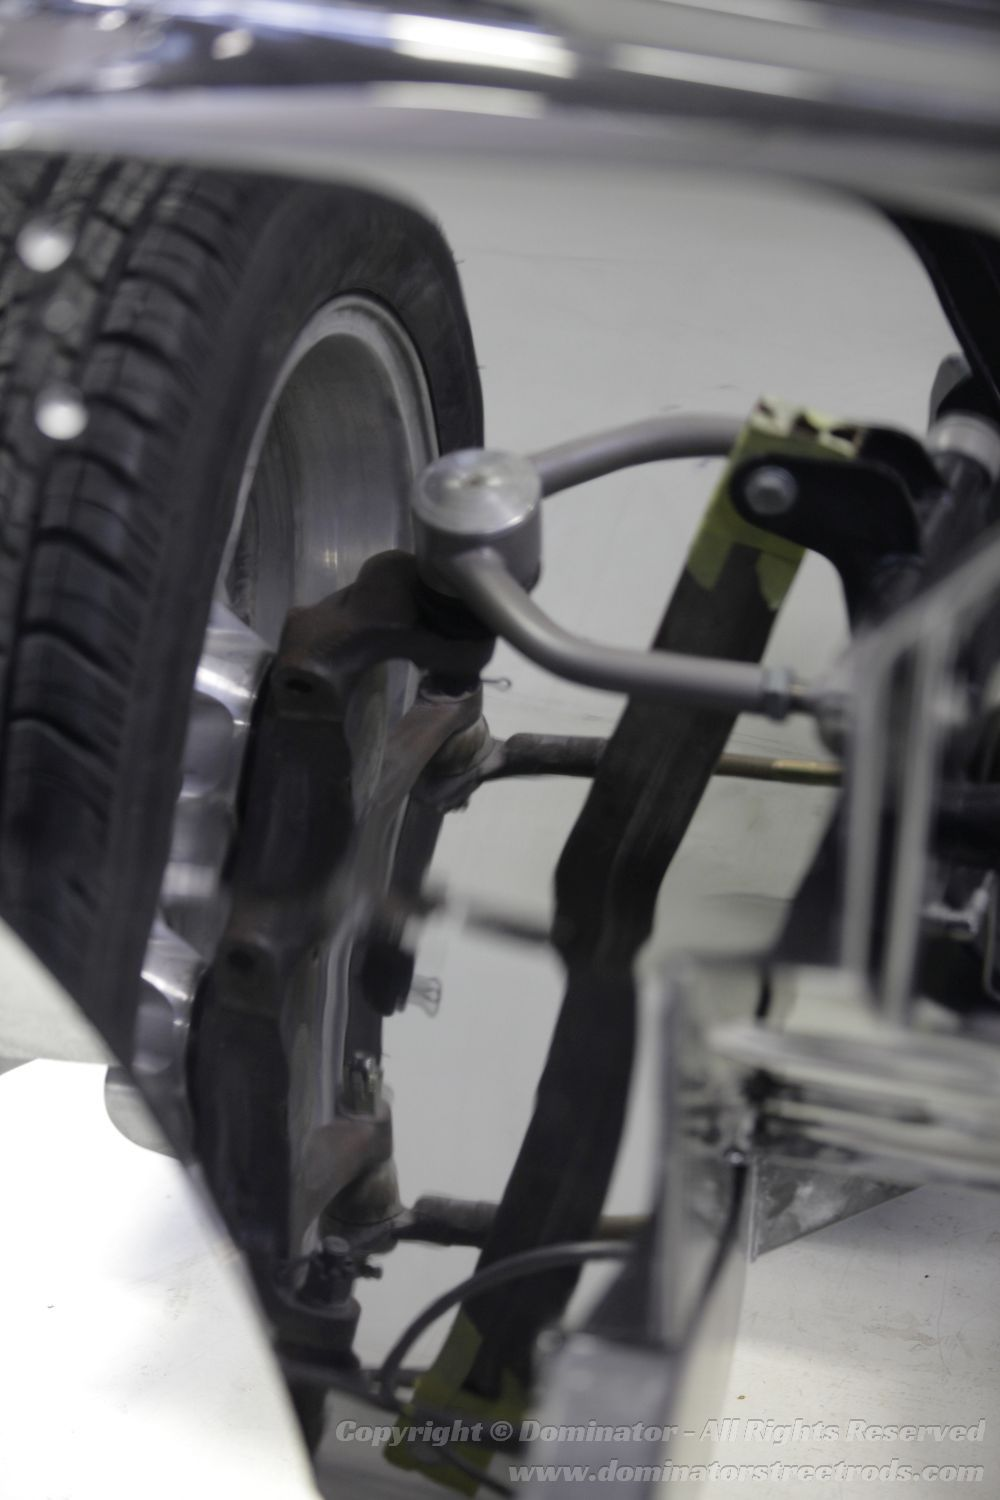 Chassis & Suspension011.jpg